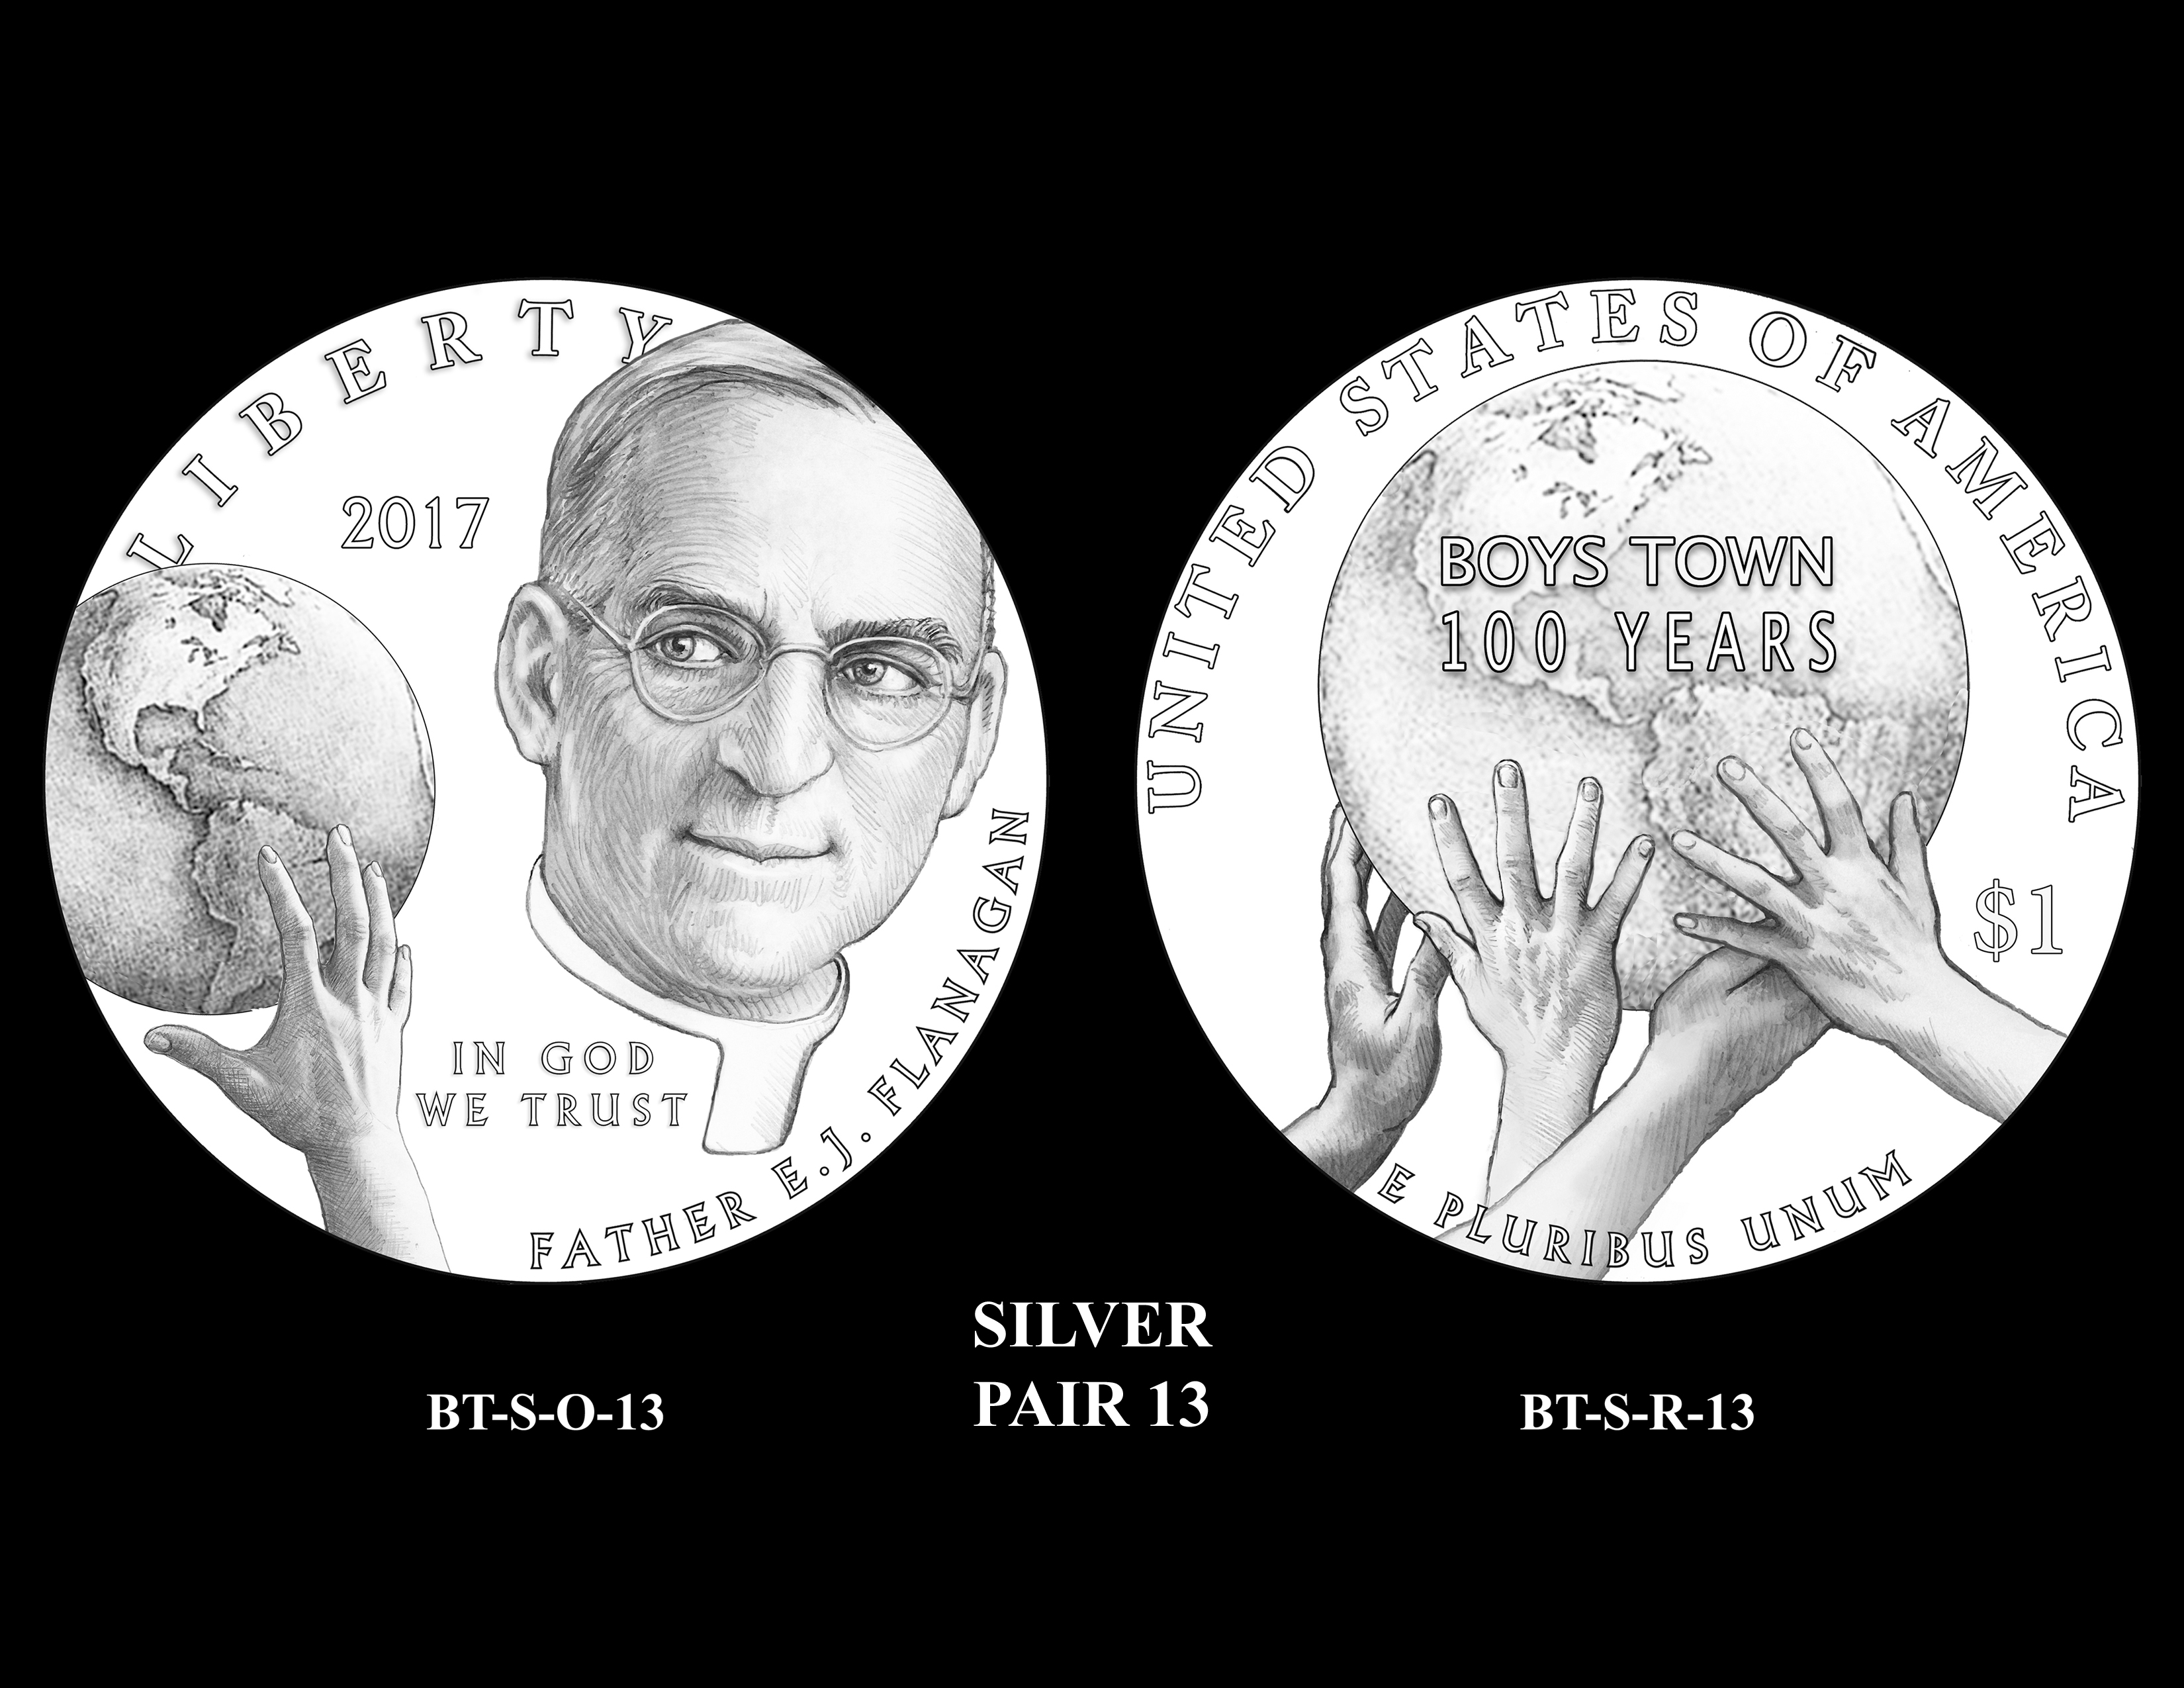 Silver-Pair-13 -- 2017 Boystown Centennial Commemorative Coin  Program